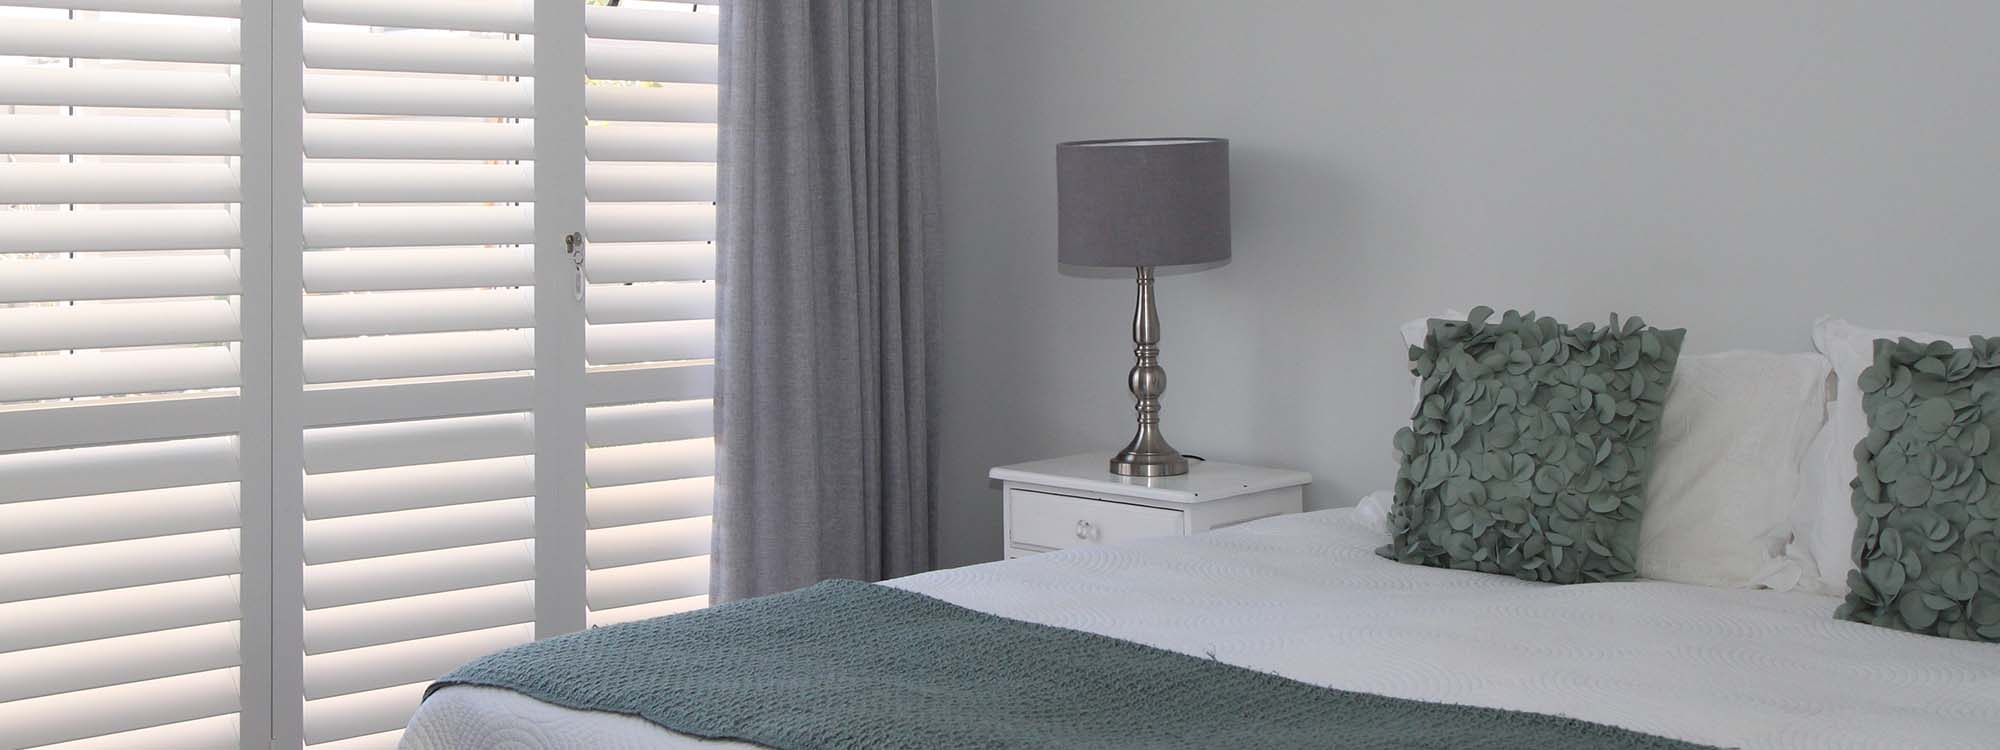 Decowood-shutters-bedroom-by-ass-eco-